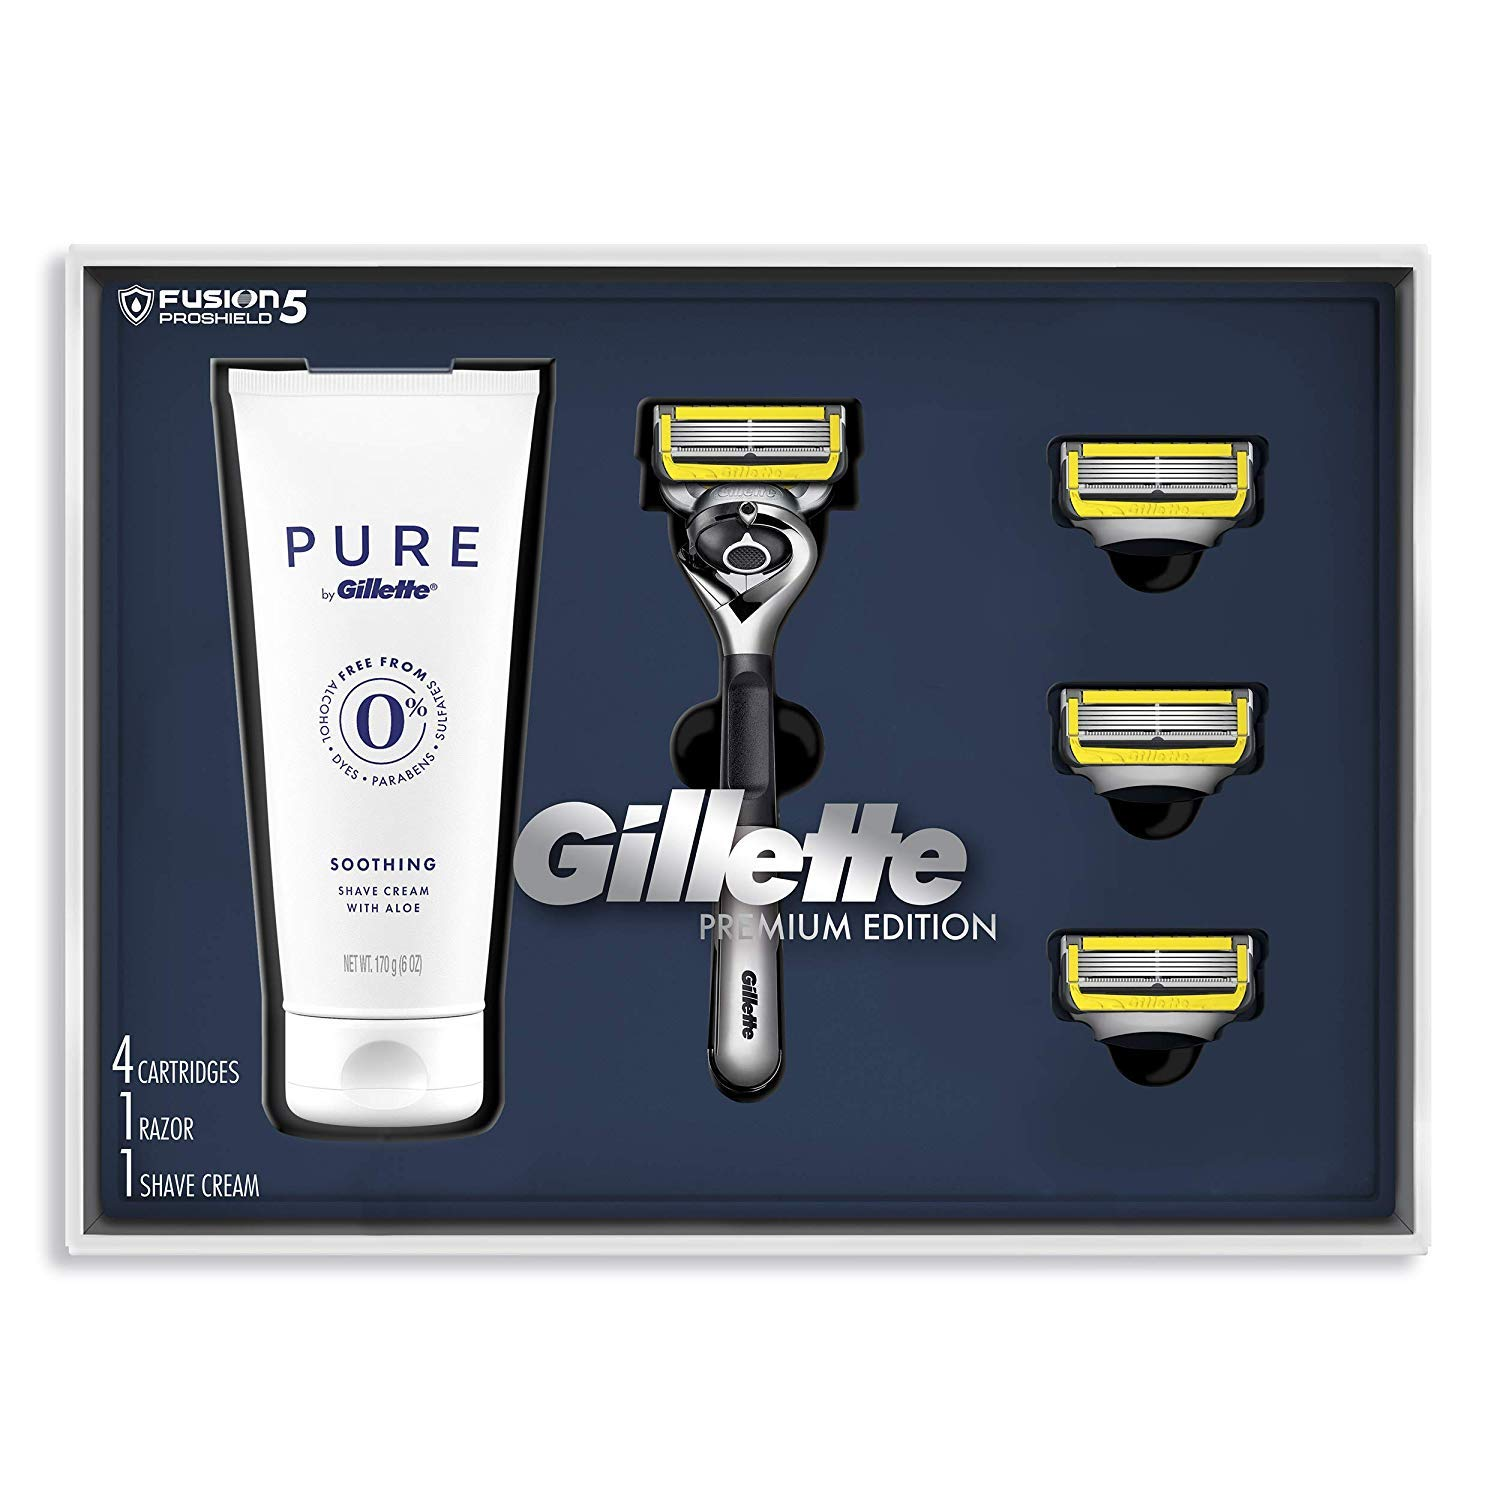 Gillette Fusion ProShield Shave Gift Set for men, including a razor, 4 refills and shaving cream